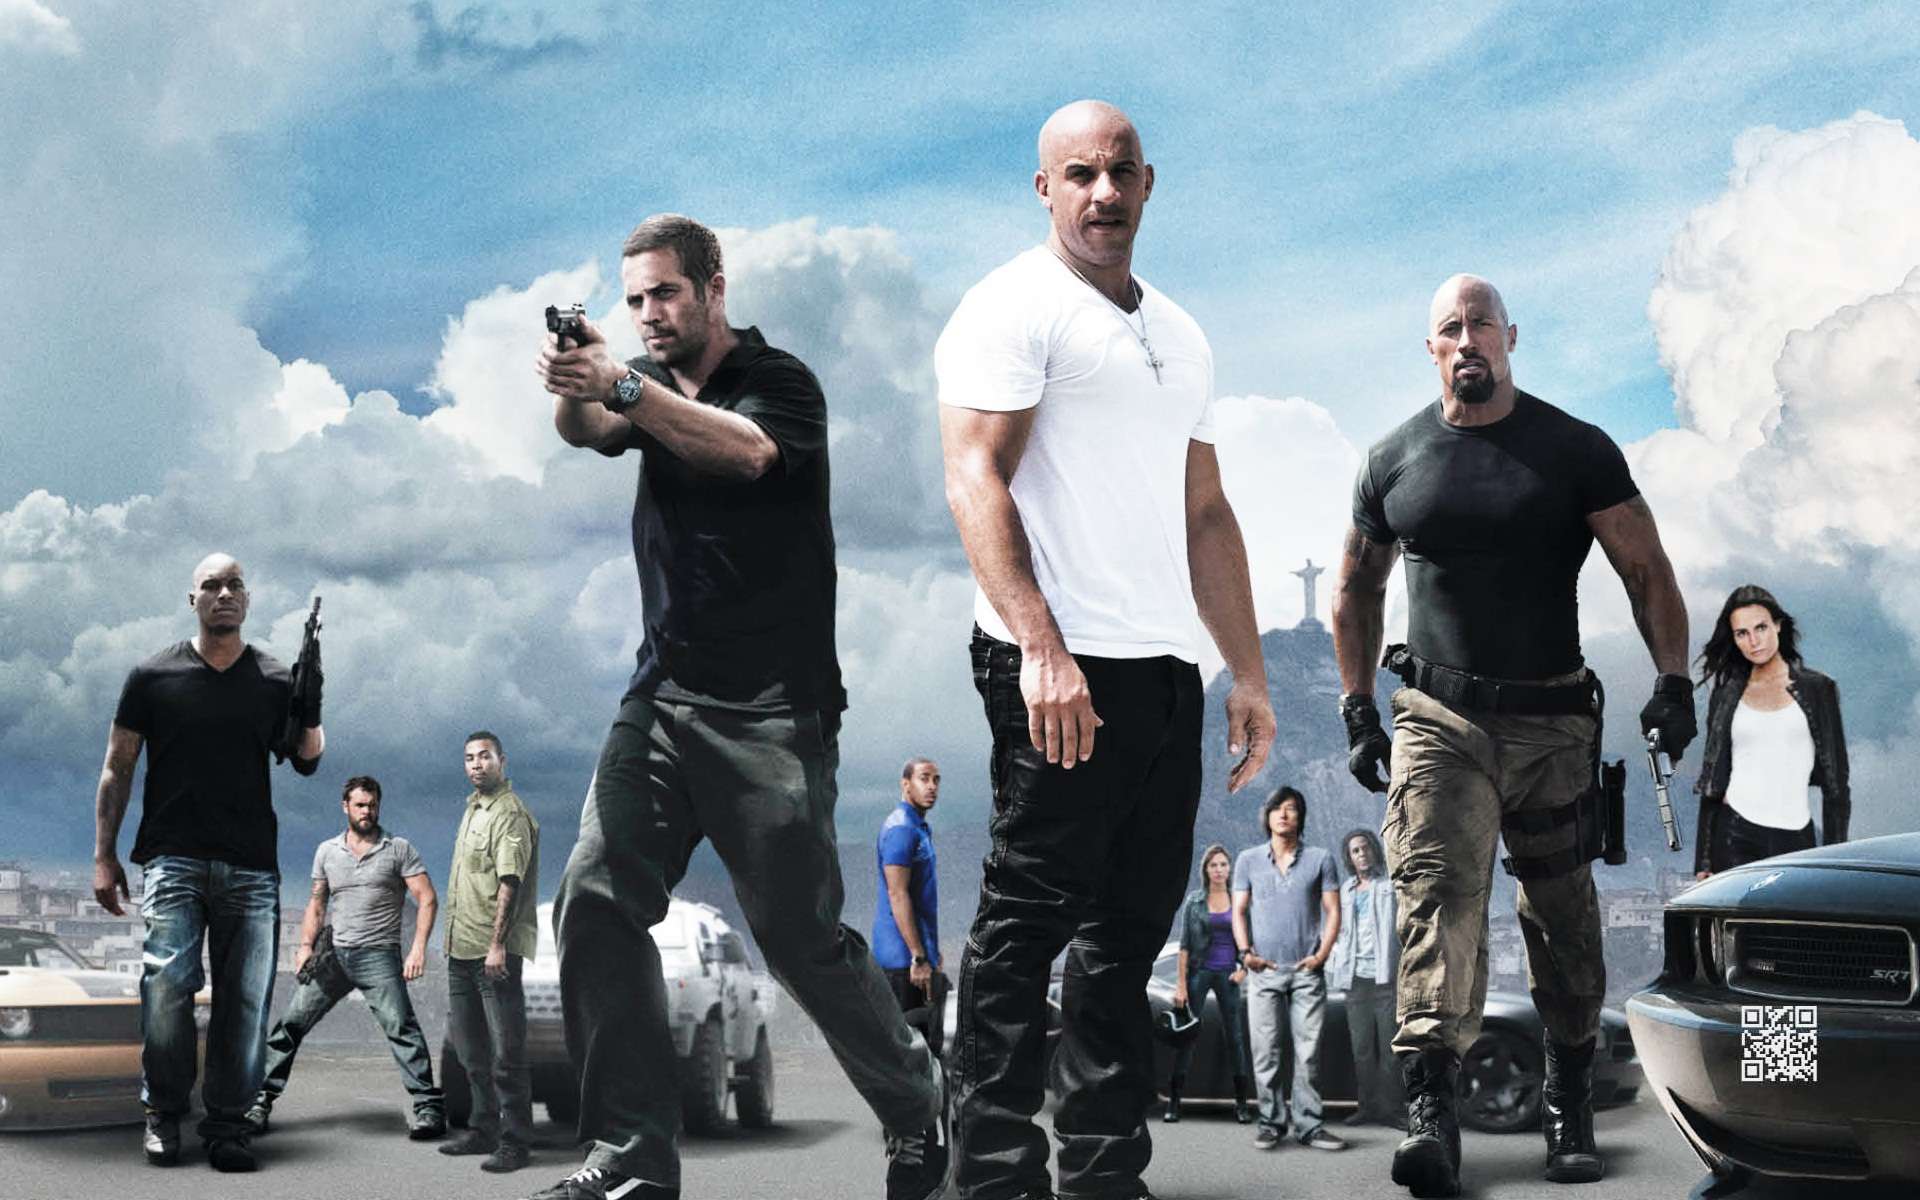 50 Fast Five Wallpaper On Wallpapersafari